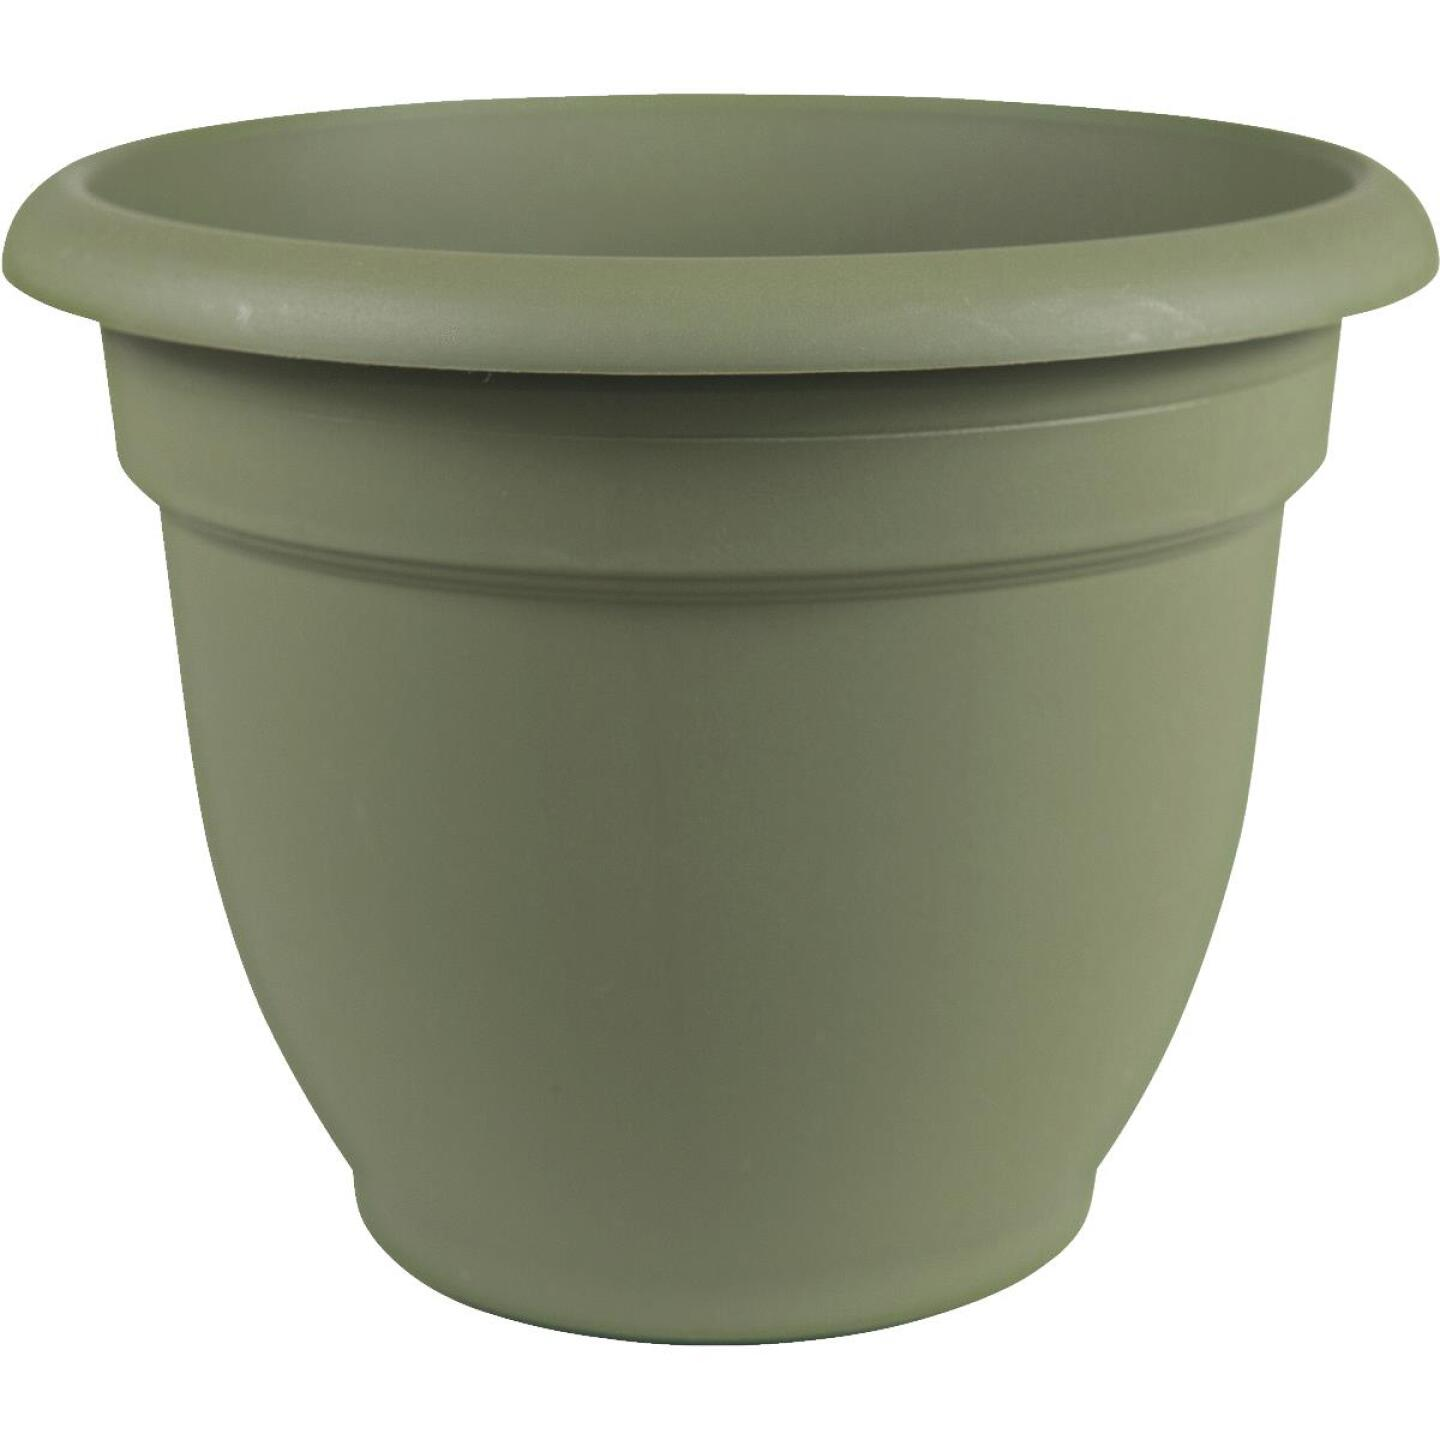 Bloem Ariana 12 In. Plastic Self Watering Thyme Green Planter Image 1